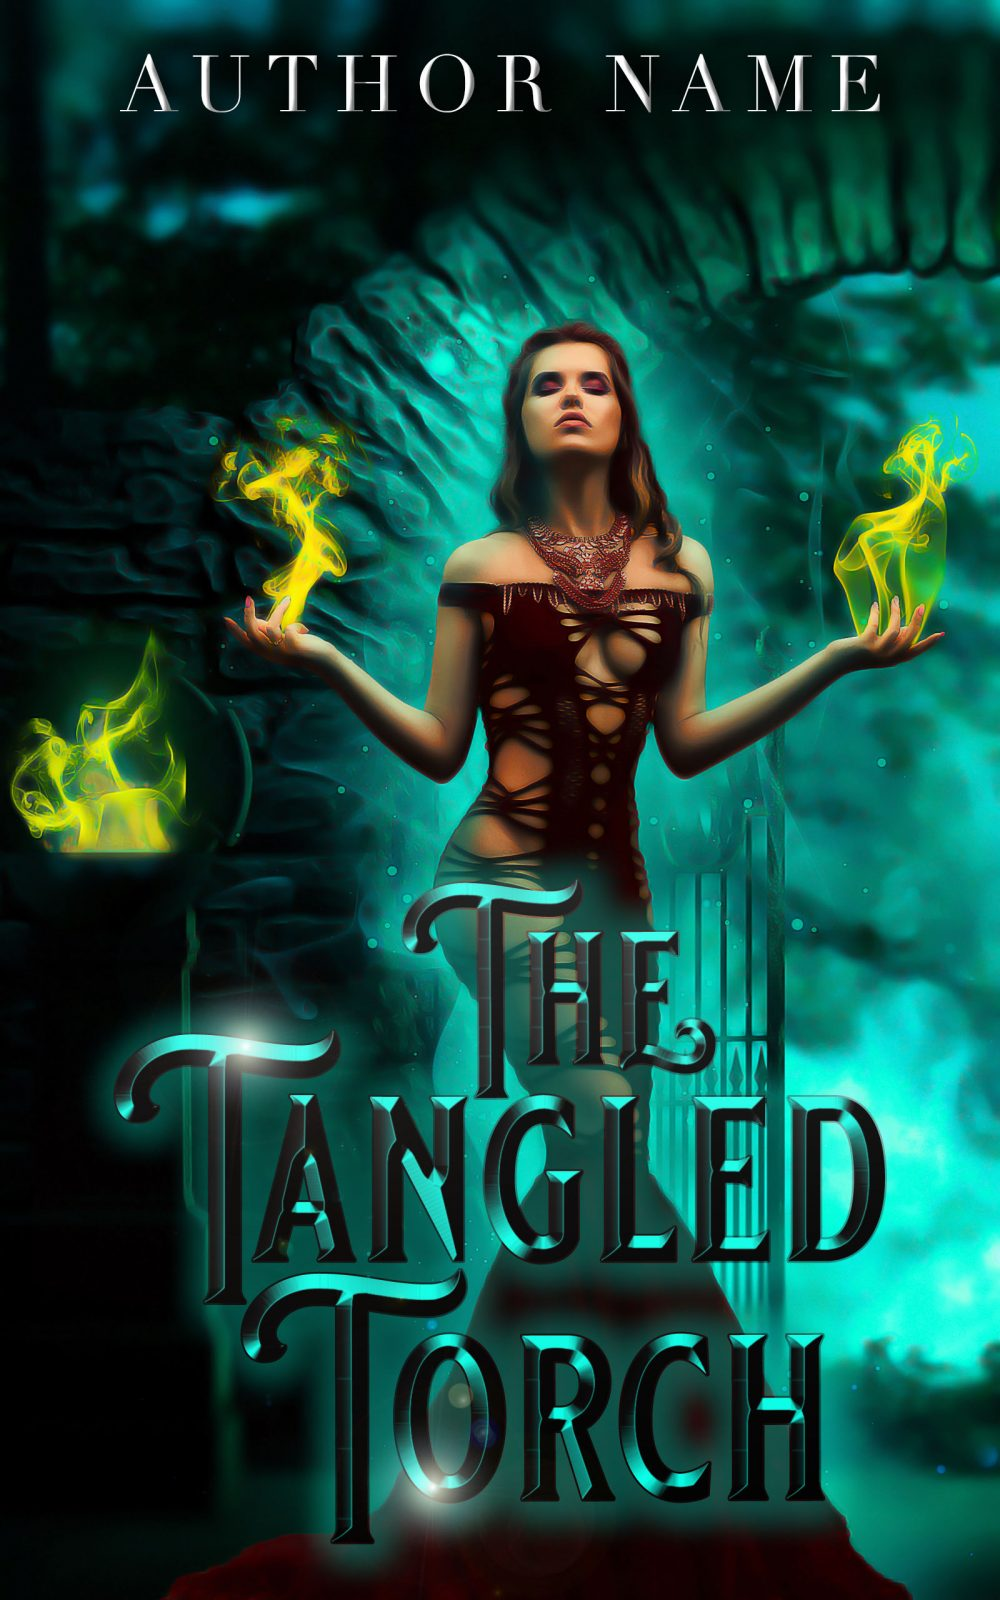 The Tangled Torch fantasy book cover